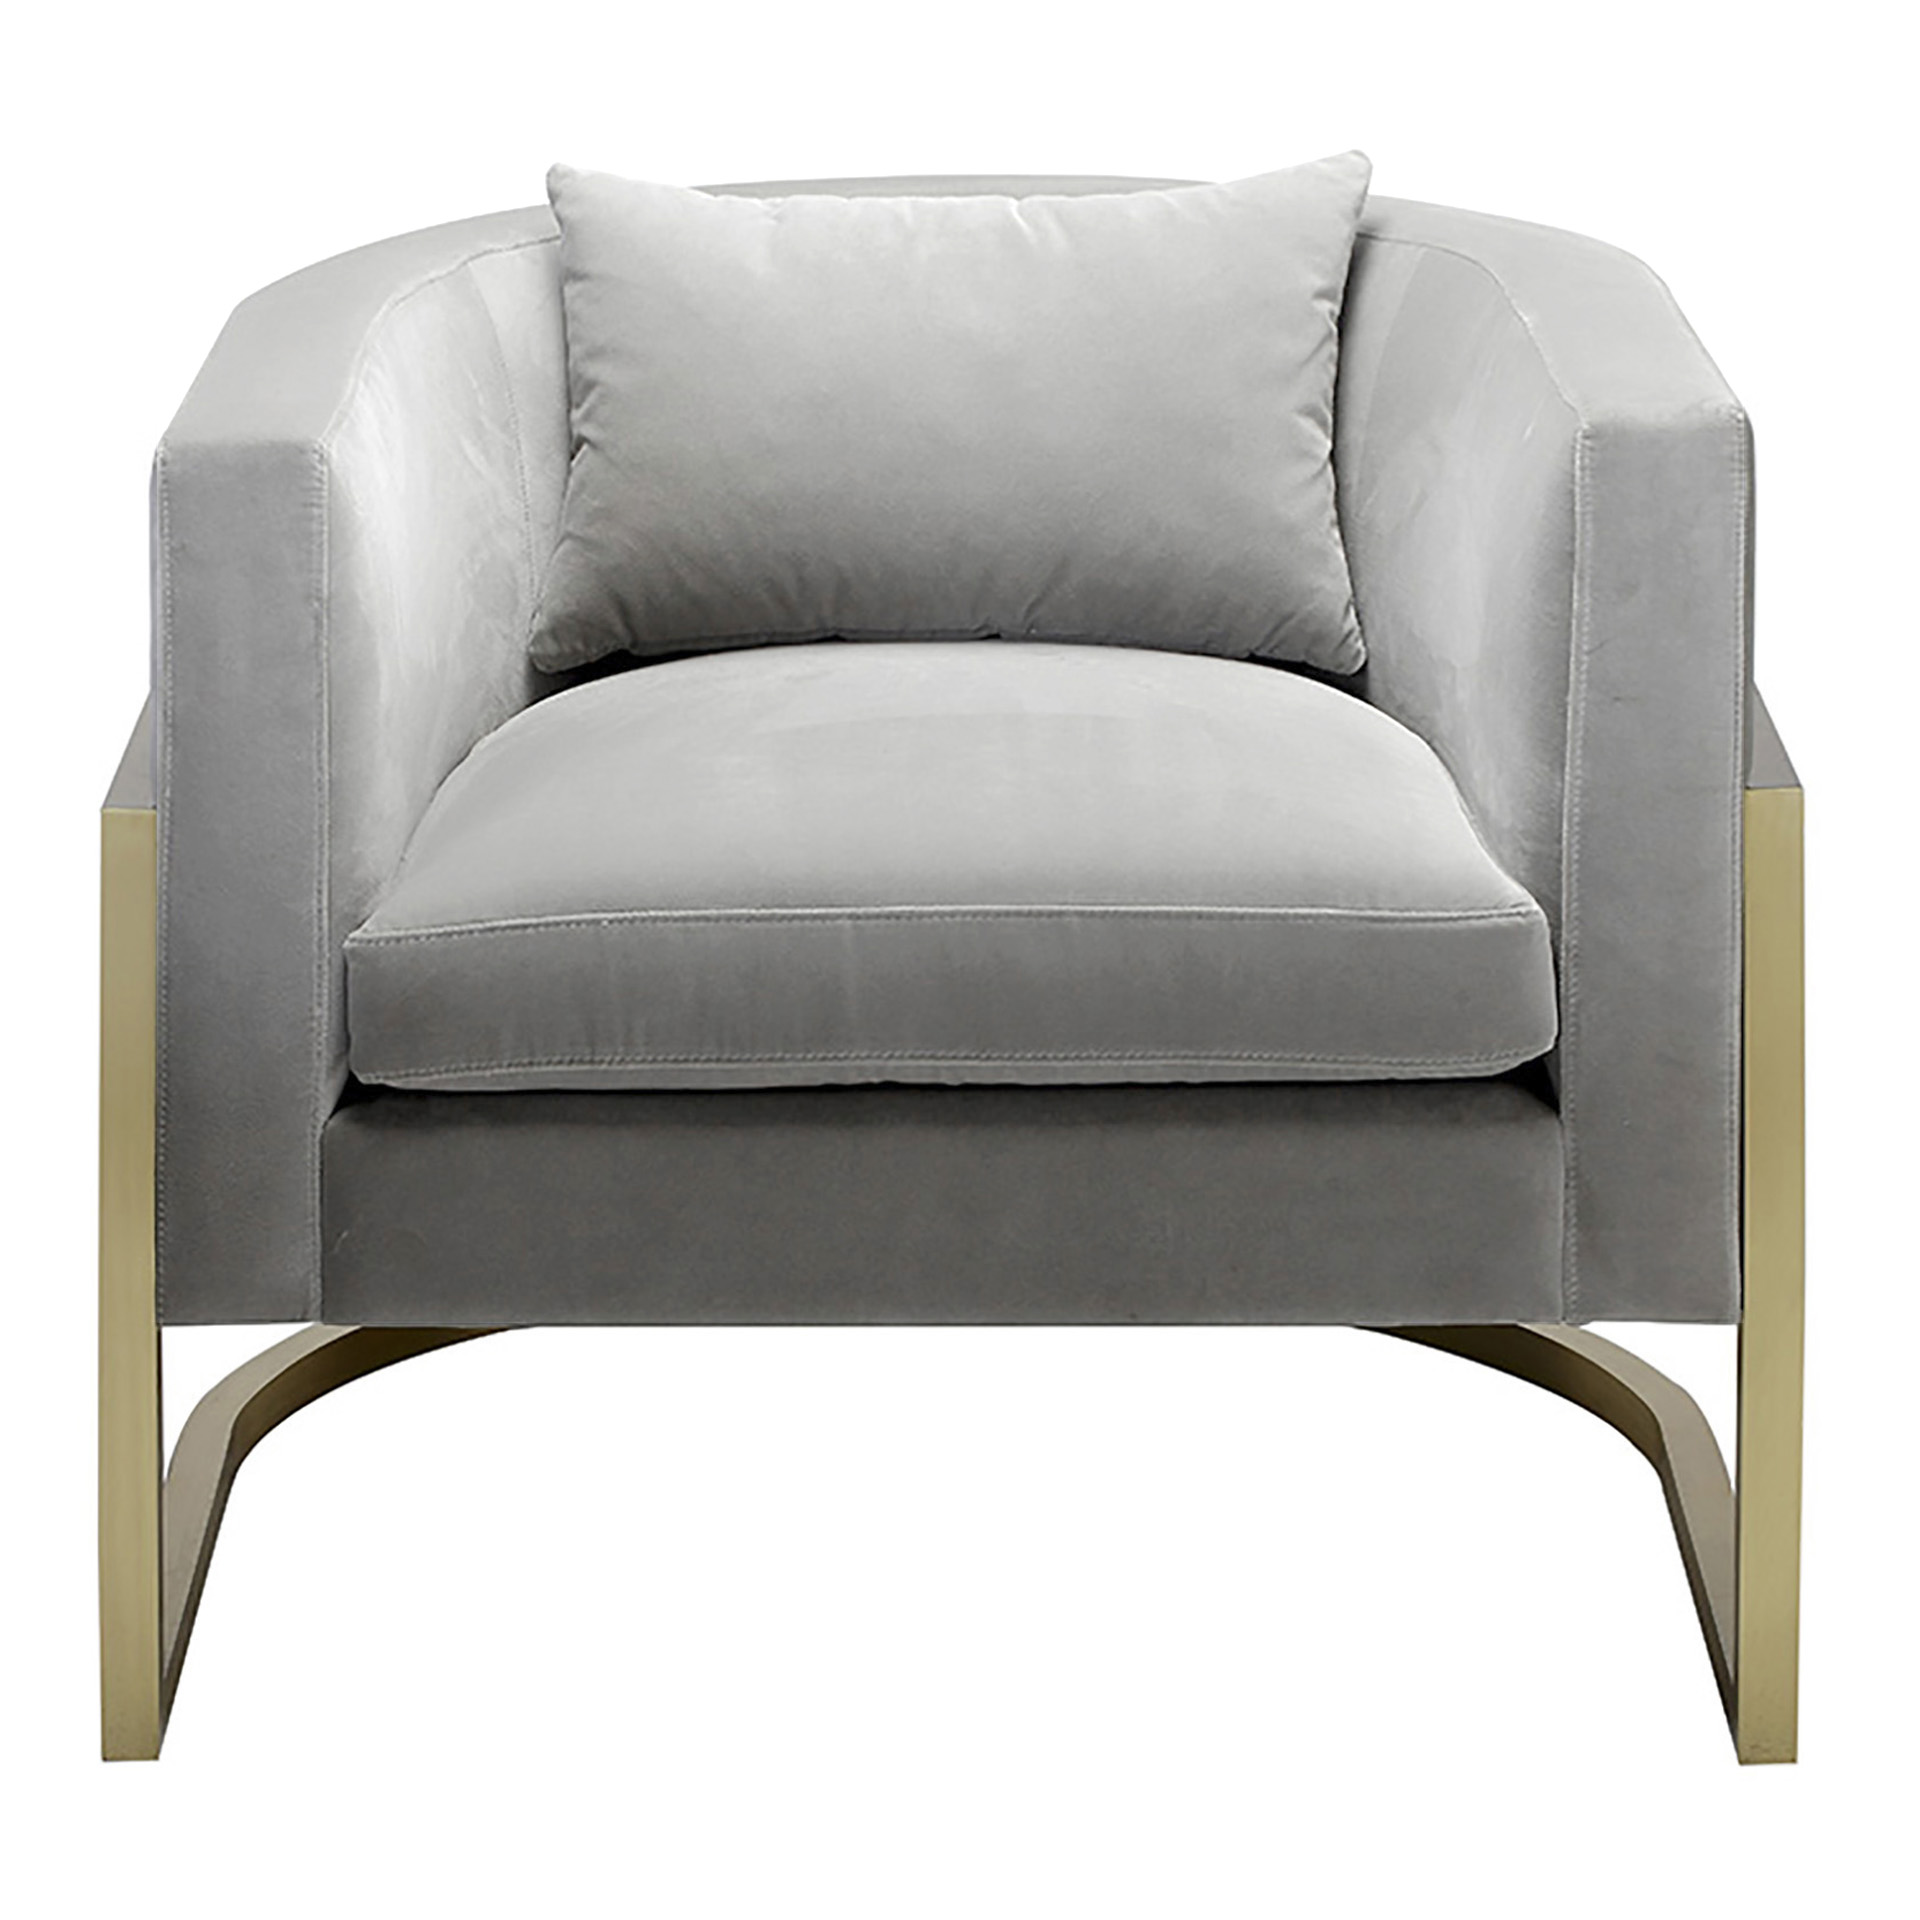 Zoom image Julius Brass Armchair Contemporary, Transitional, Organic,  MidCentury Modern, Metal, Upholstery Fabric